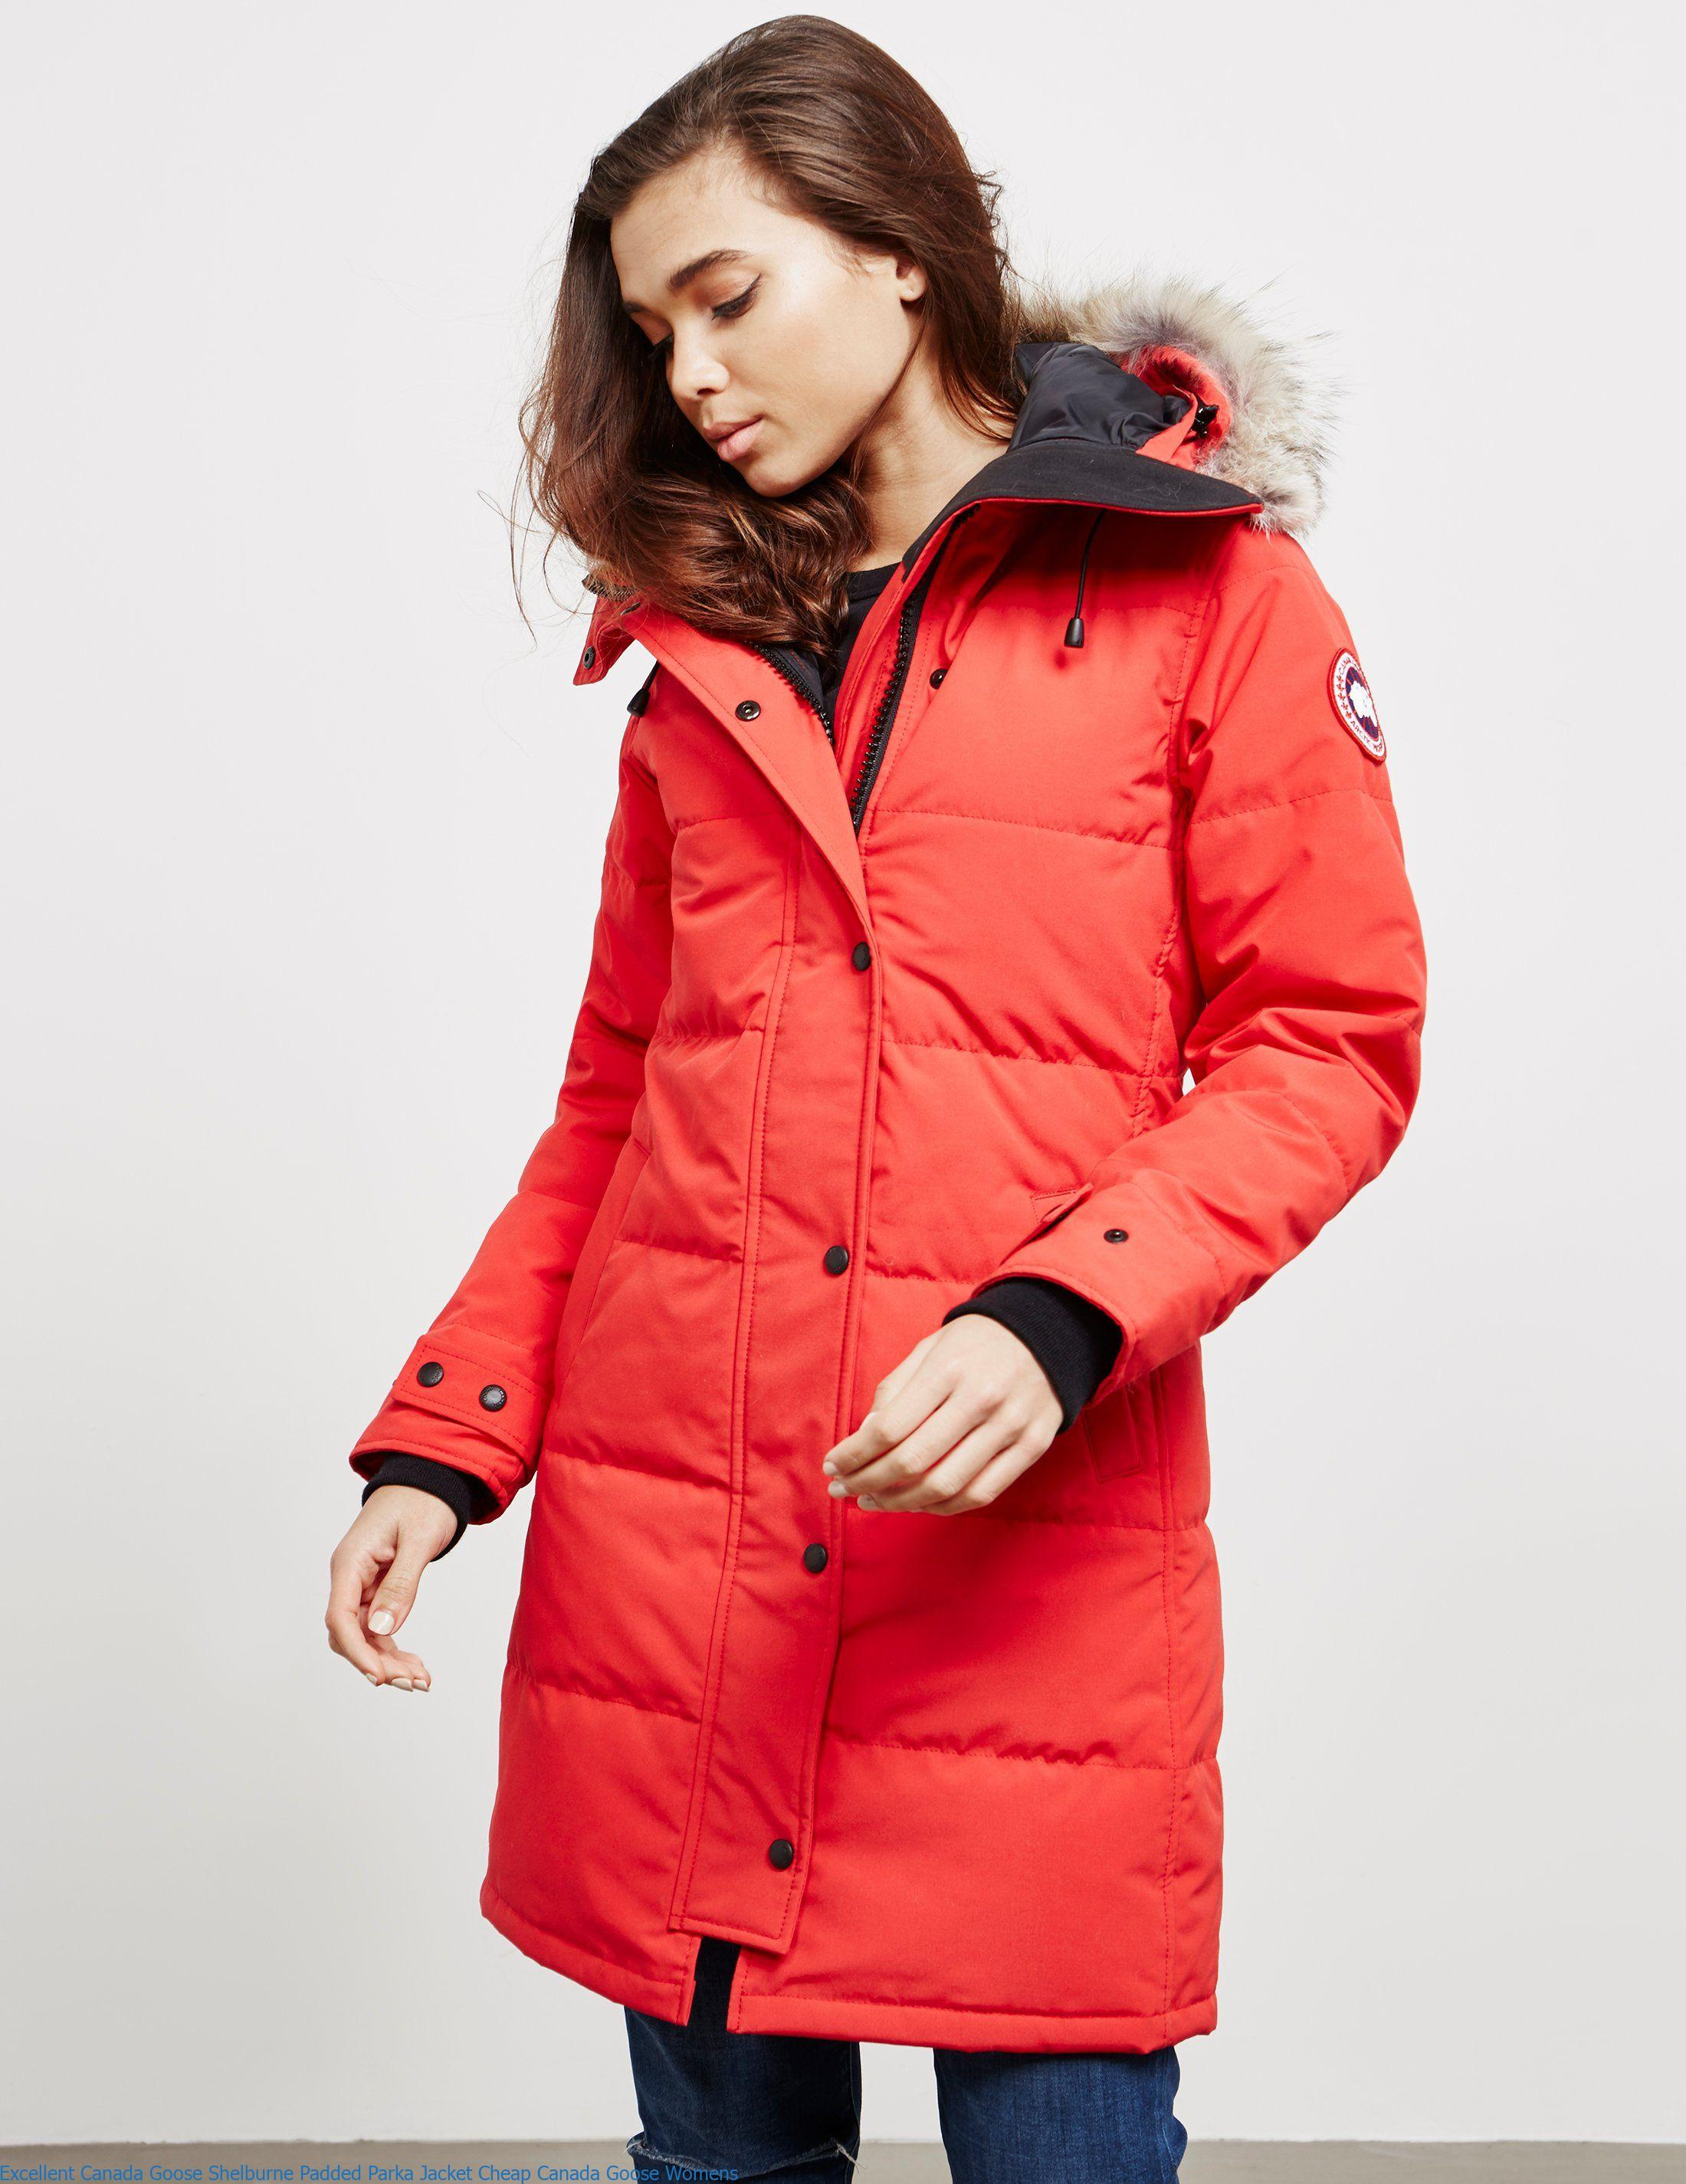 aa3f5cebde20 Excellent Canada Goose Shelburne Padded Parka Jacket Cheap Canada Goose  Womens – Canada Goose Sale Outlet Cheap Parka Online Shop